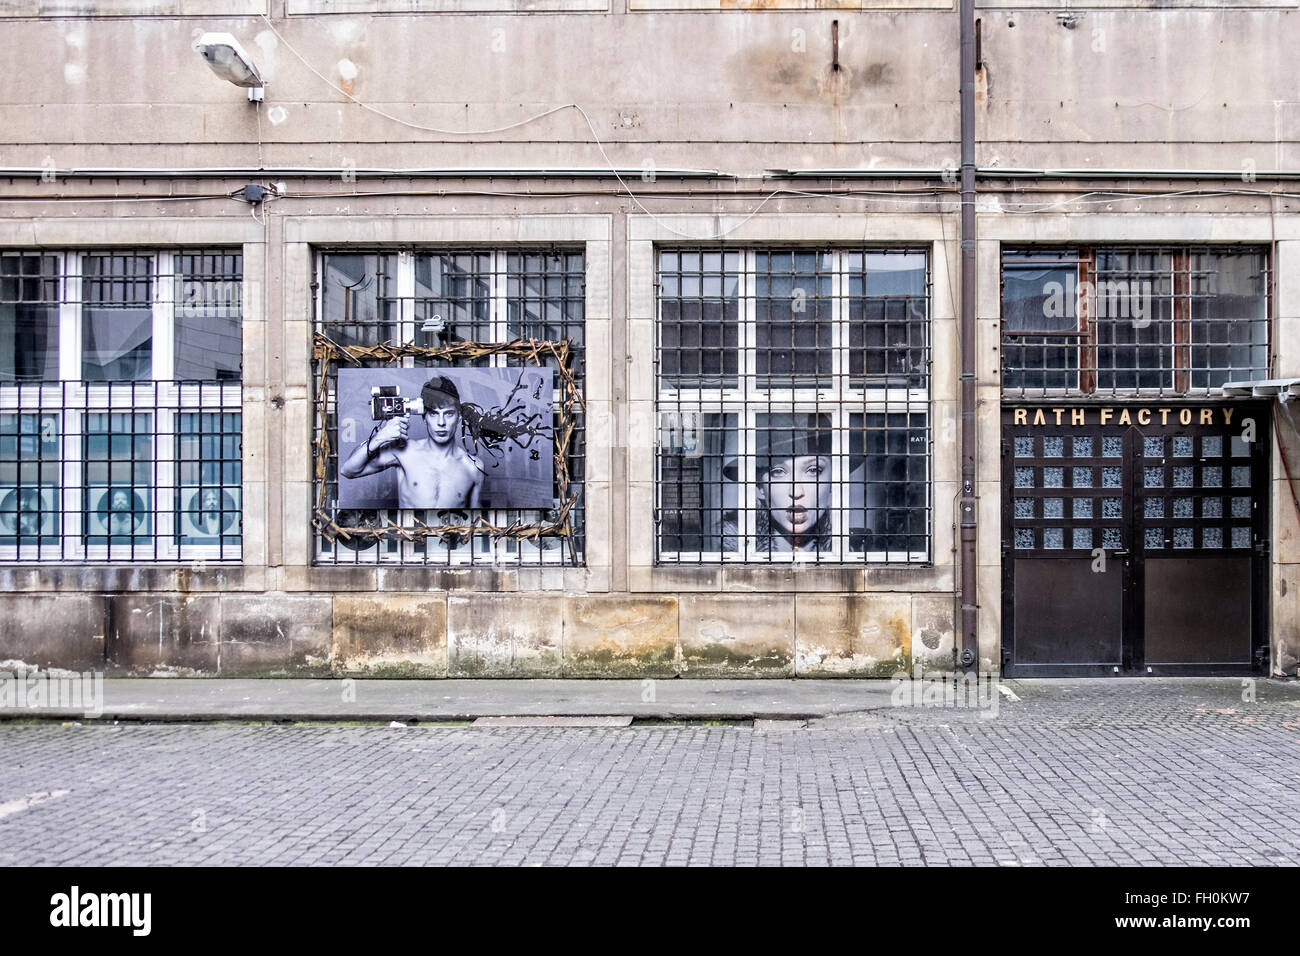 Studio and workshop of Photographer, Oliver Rath in Berlin. Rath Factory exterior with photographs. - Stock Image